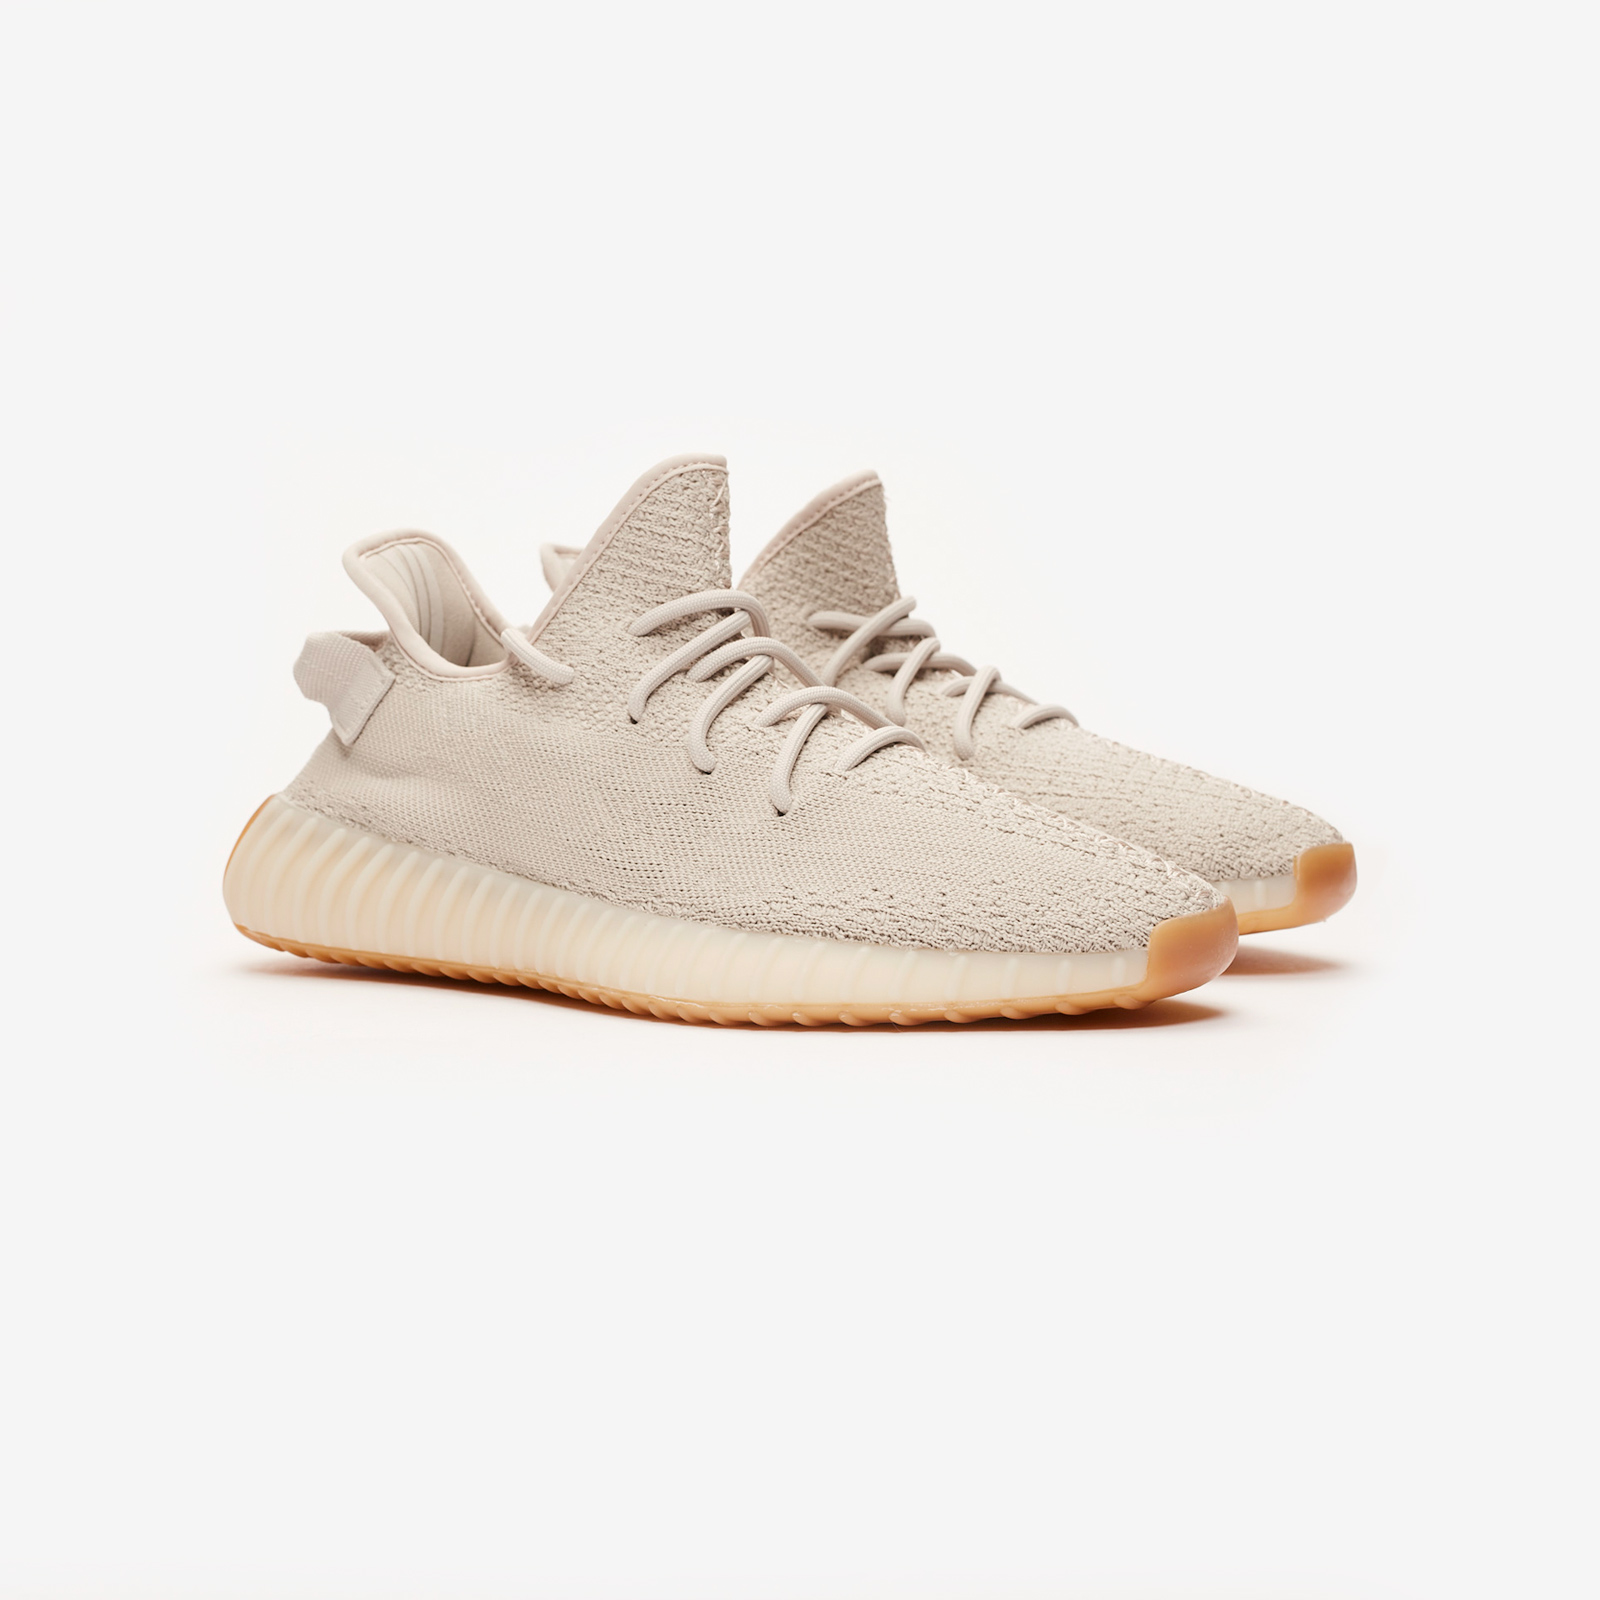 0feaa96a274493 adidas Yeezy Boost 350 V2 - F99710 - Sneakersnstuff